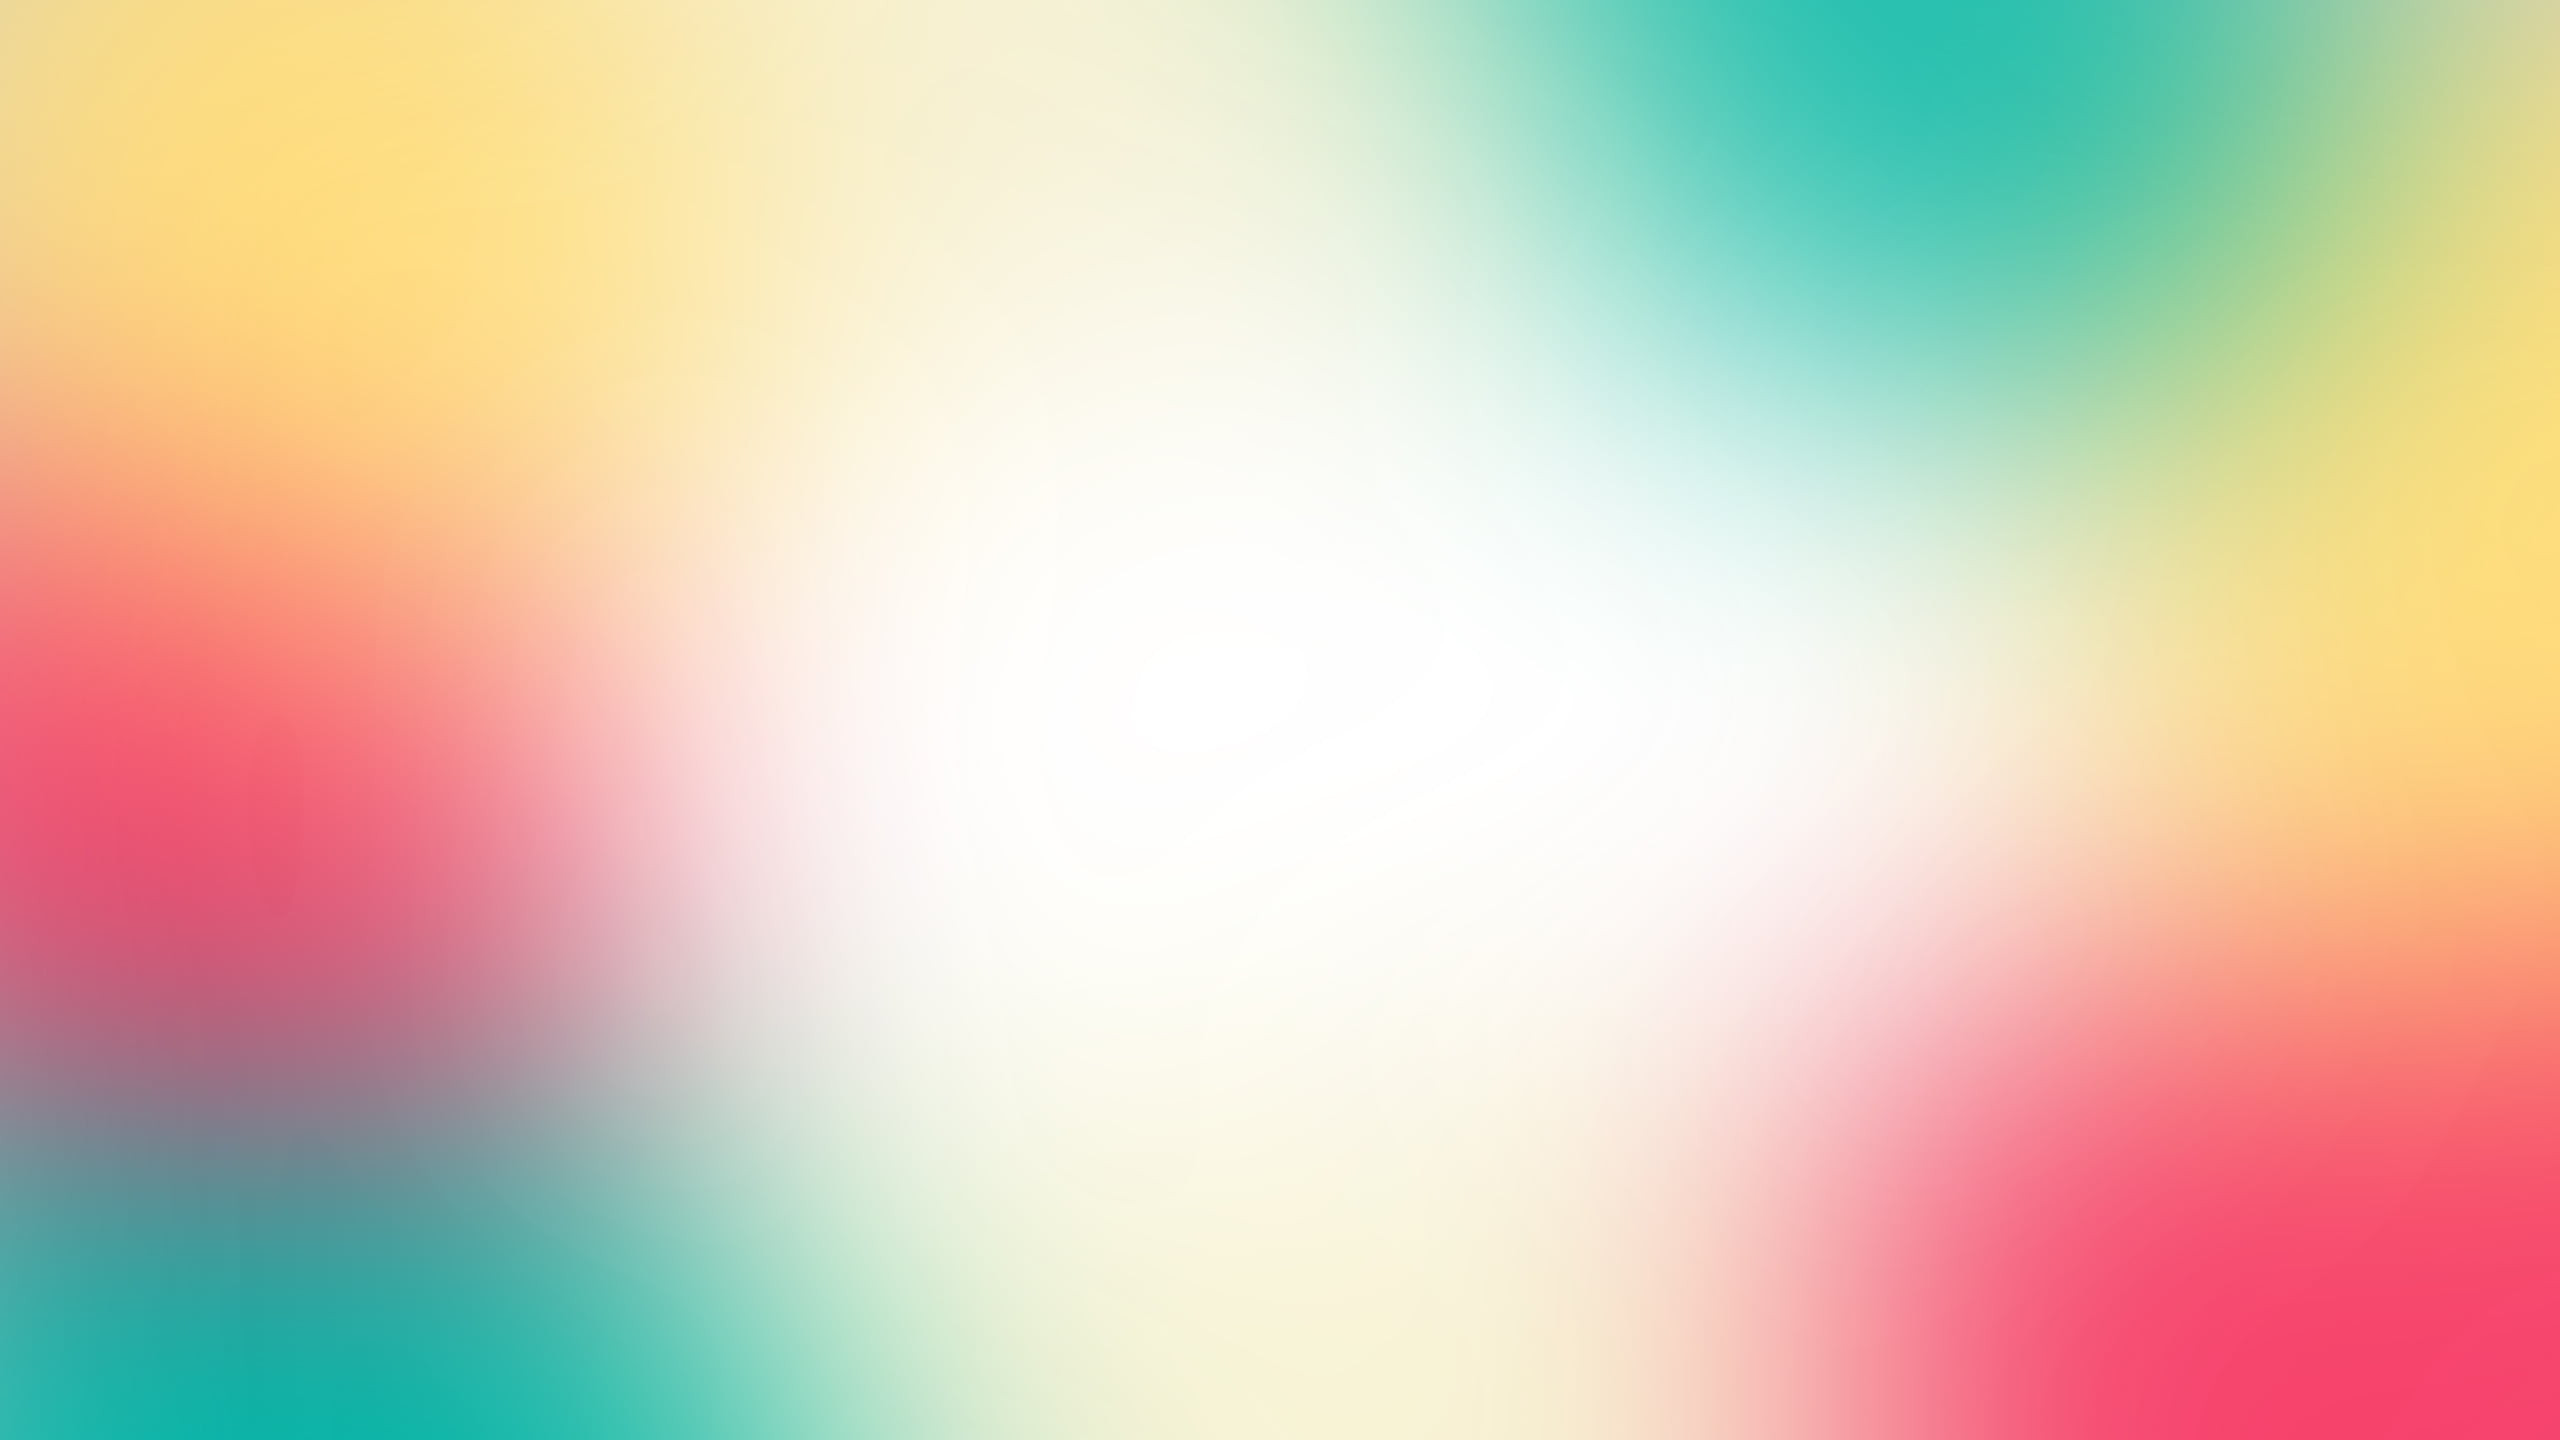 bxomhm simple background images hd